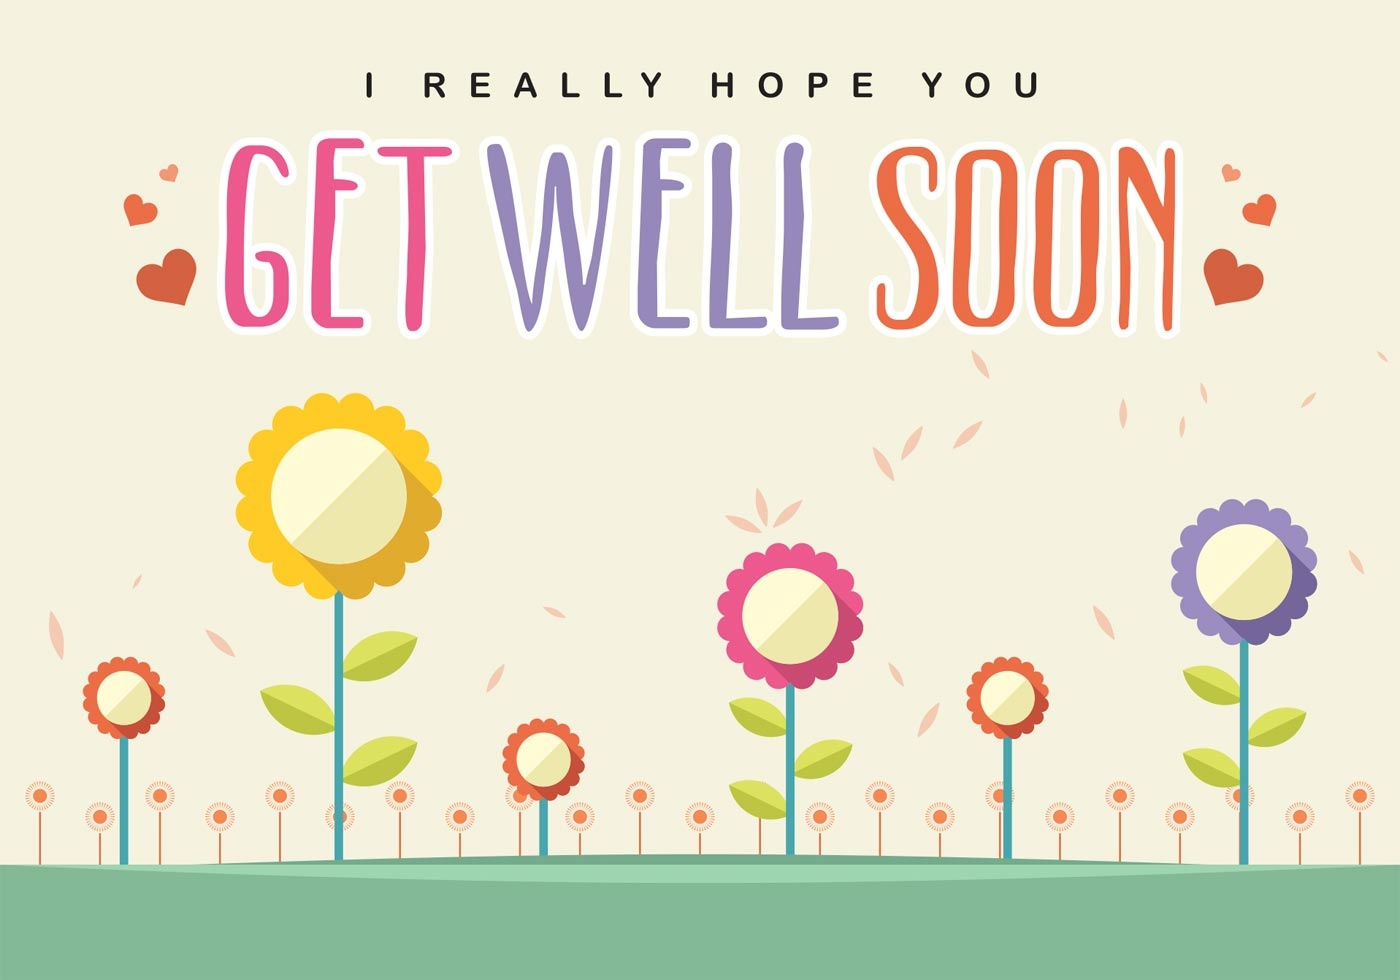 Free Printable Get Well Soon Cards - Printable Cards - Free Printable Get Well Soon Cards